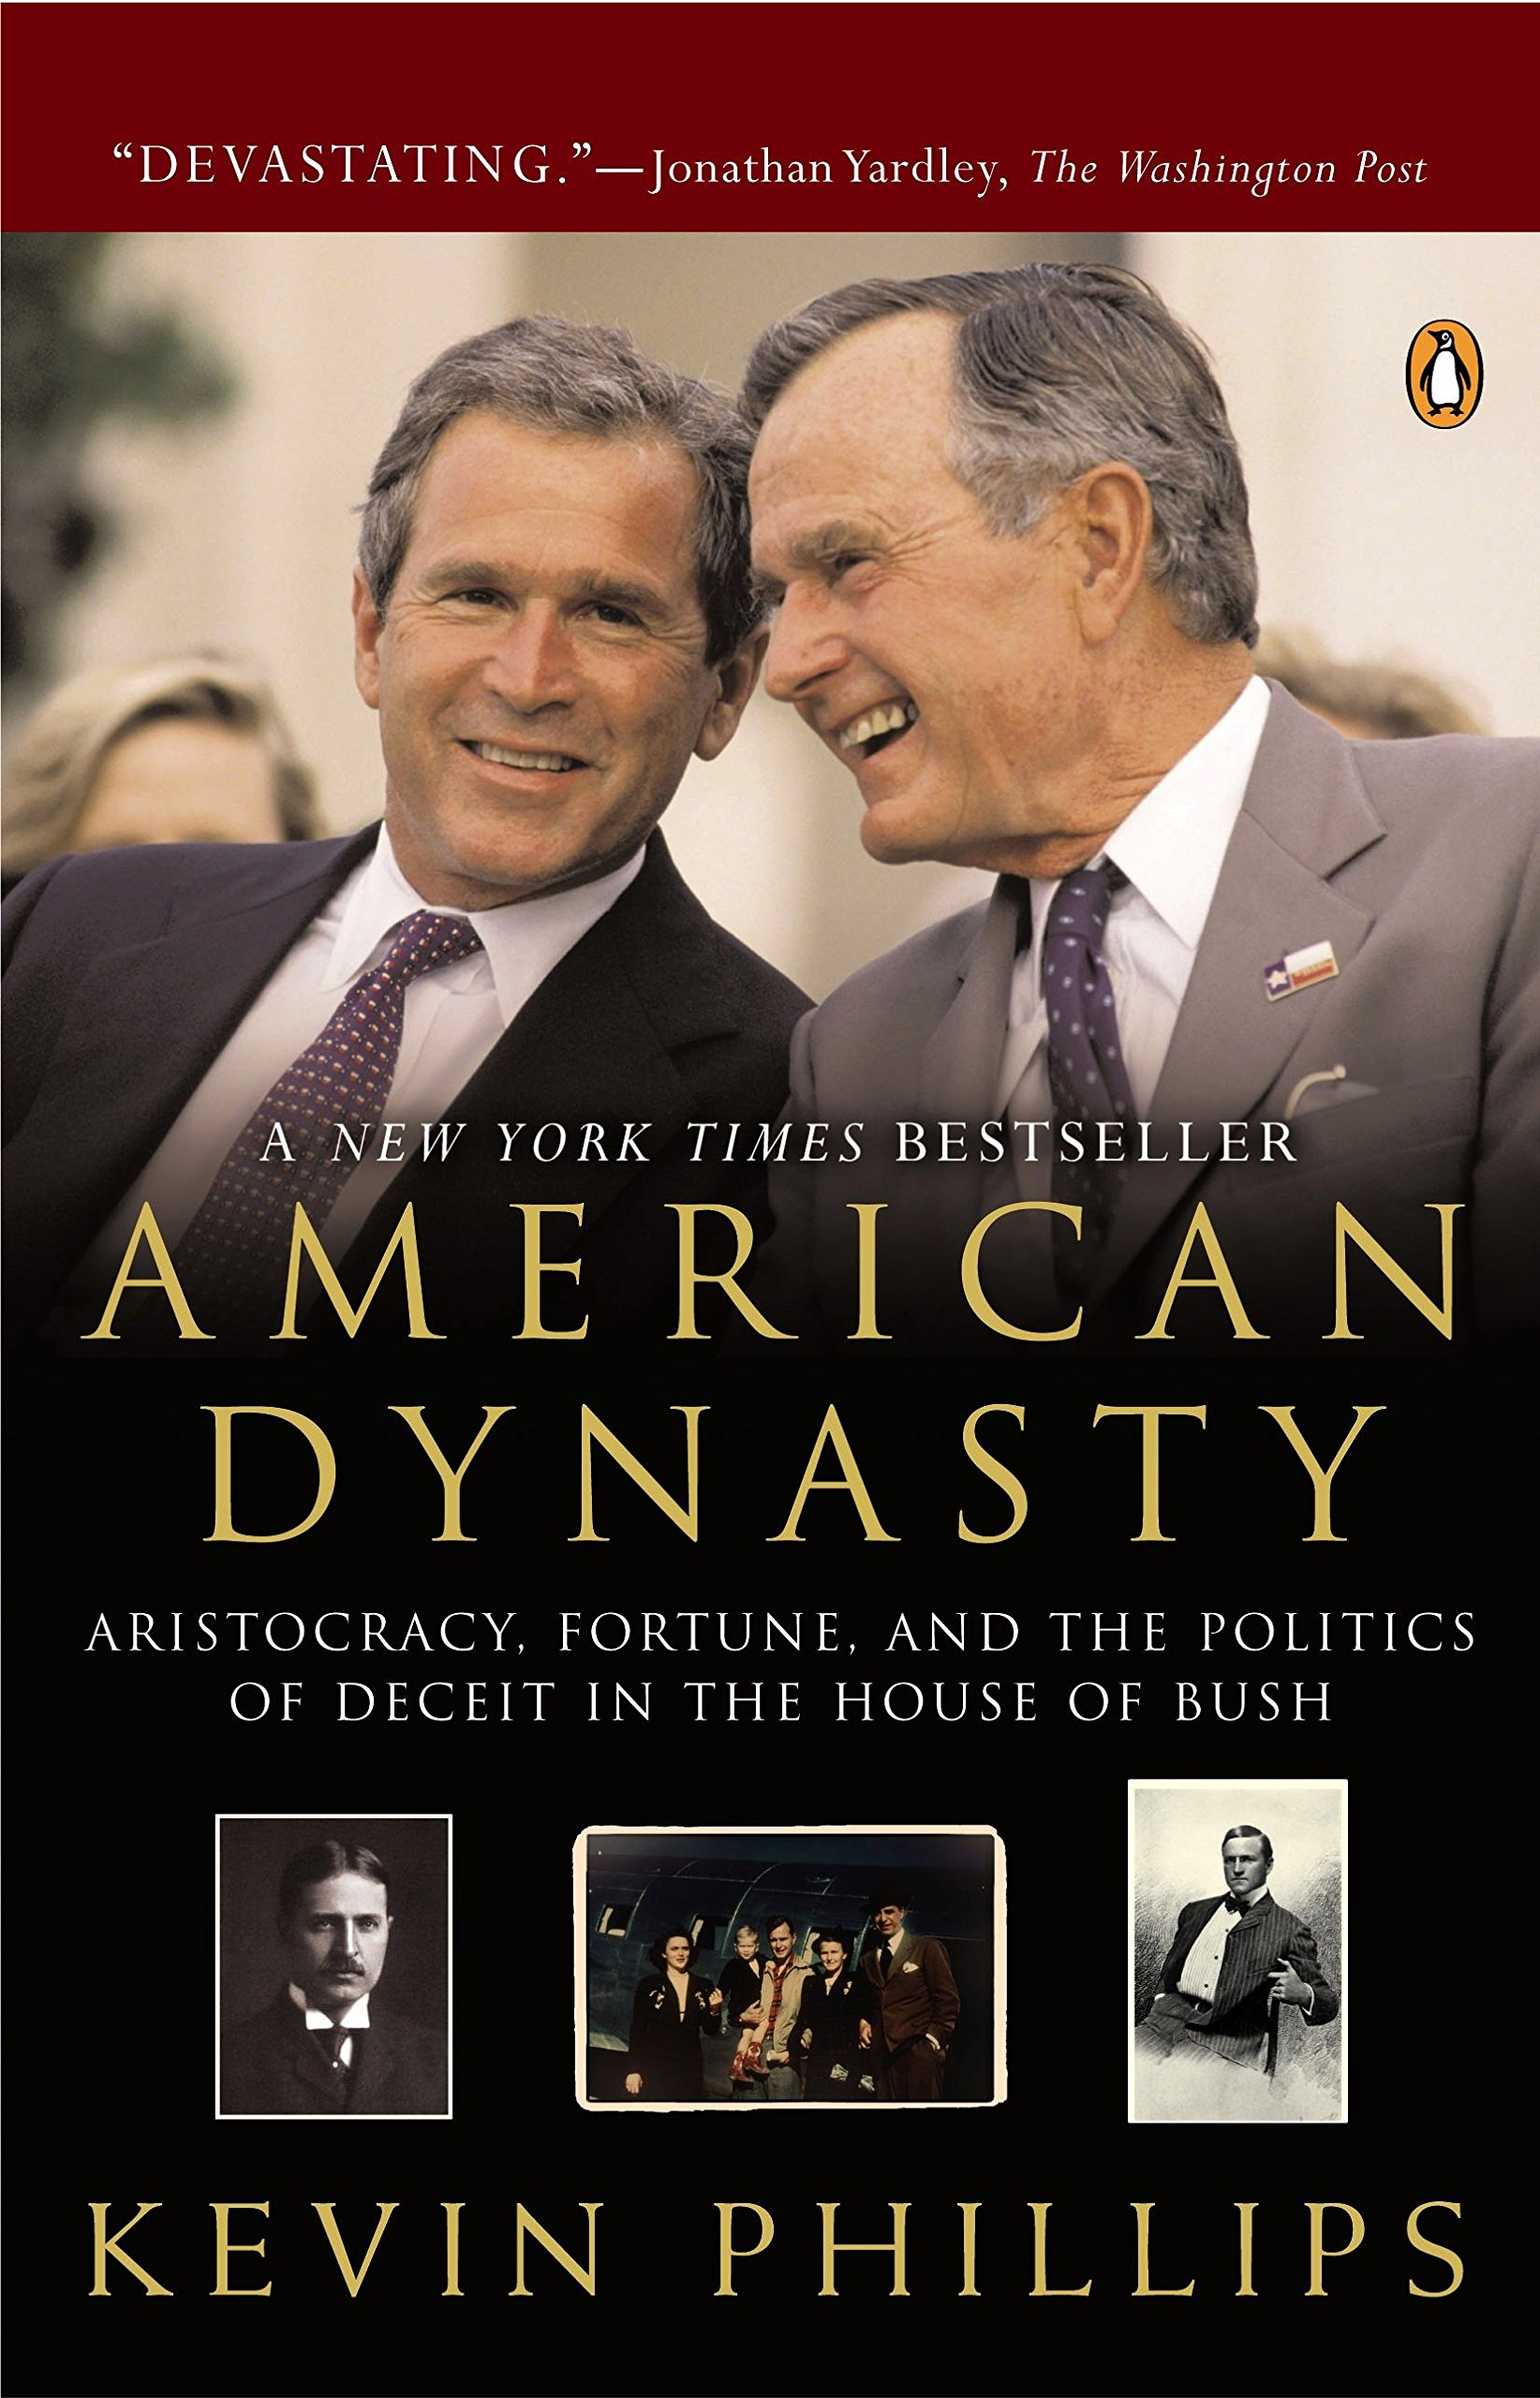 Image result for PHOTOS OF Kevin Phillips American Dynasty: Aristocracy, Fortune, and the Politics of Deceit in the House of Bush